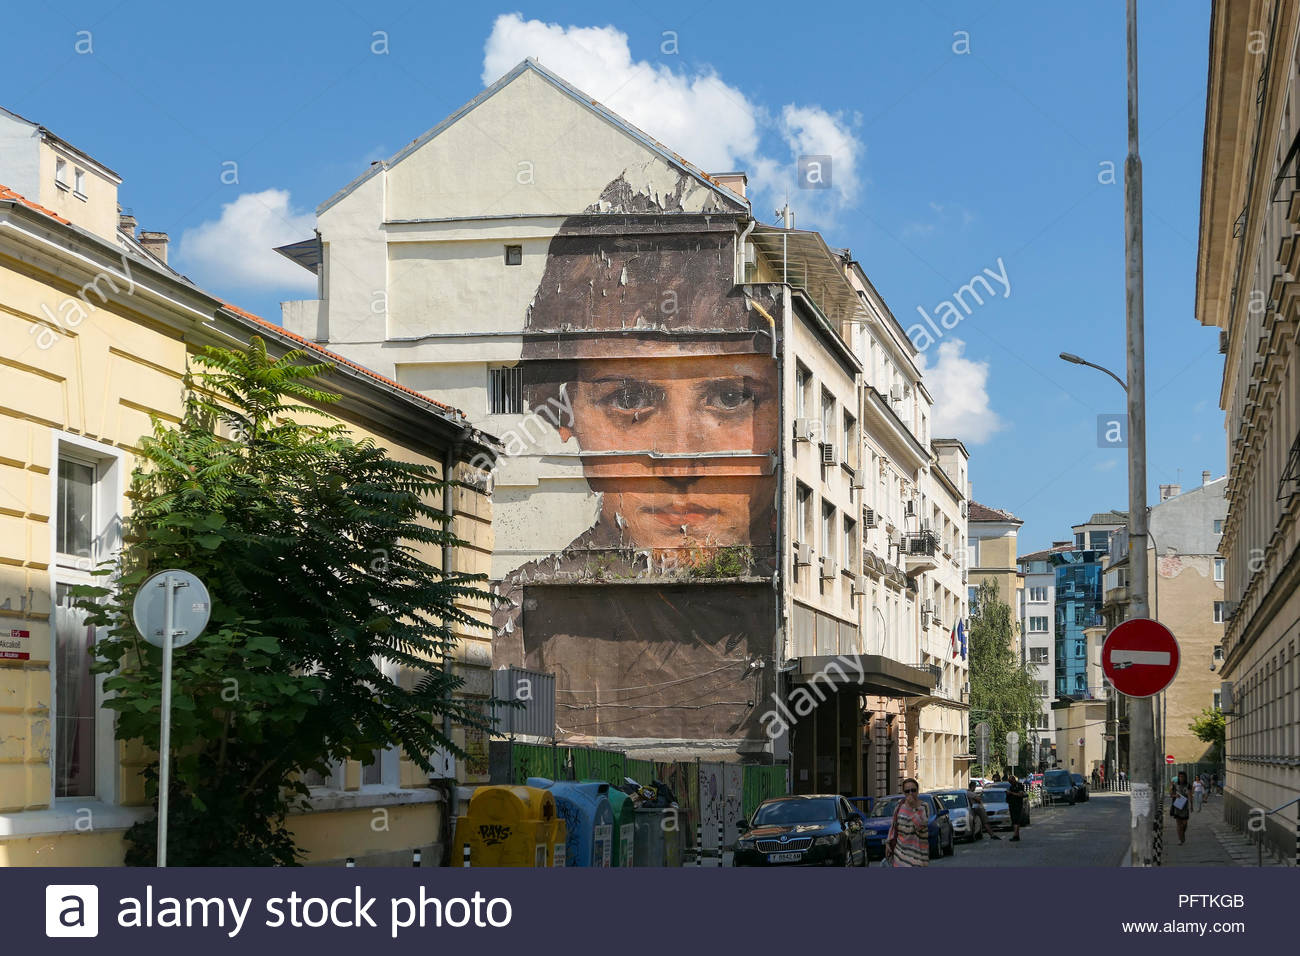 Sofia street - The Outings Project by Julien de Casablanca - painting of Portrait of a Child on building (original painting by Dechko Mandov) Bulgaria - Stock Image